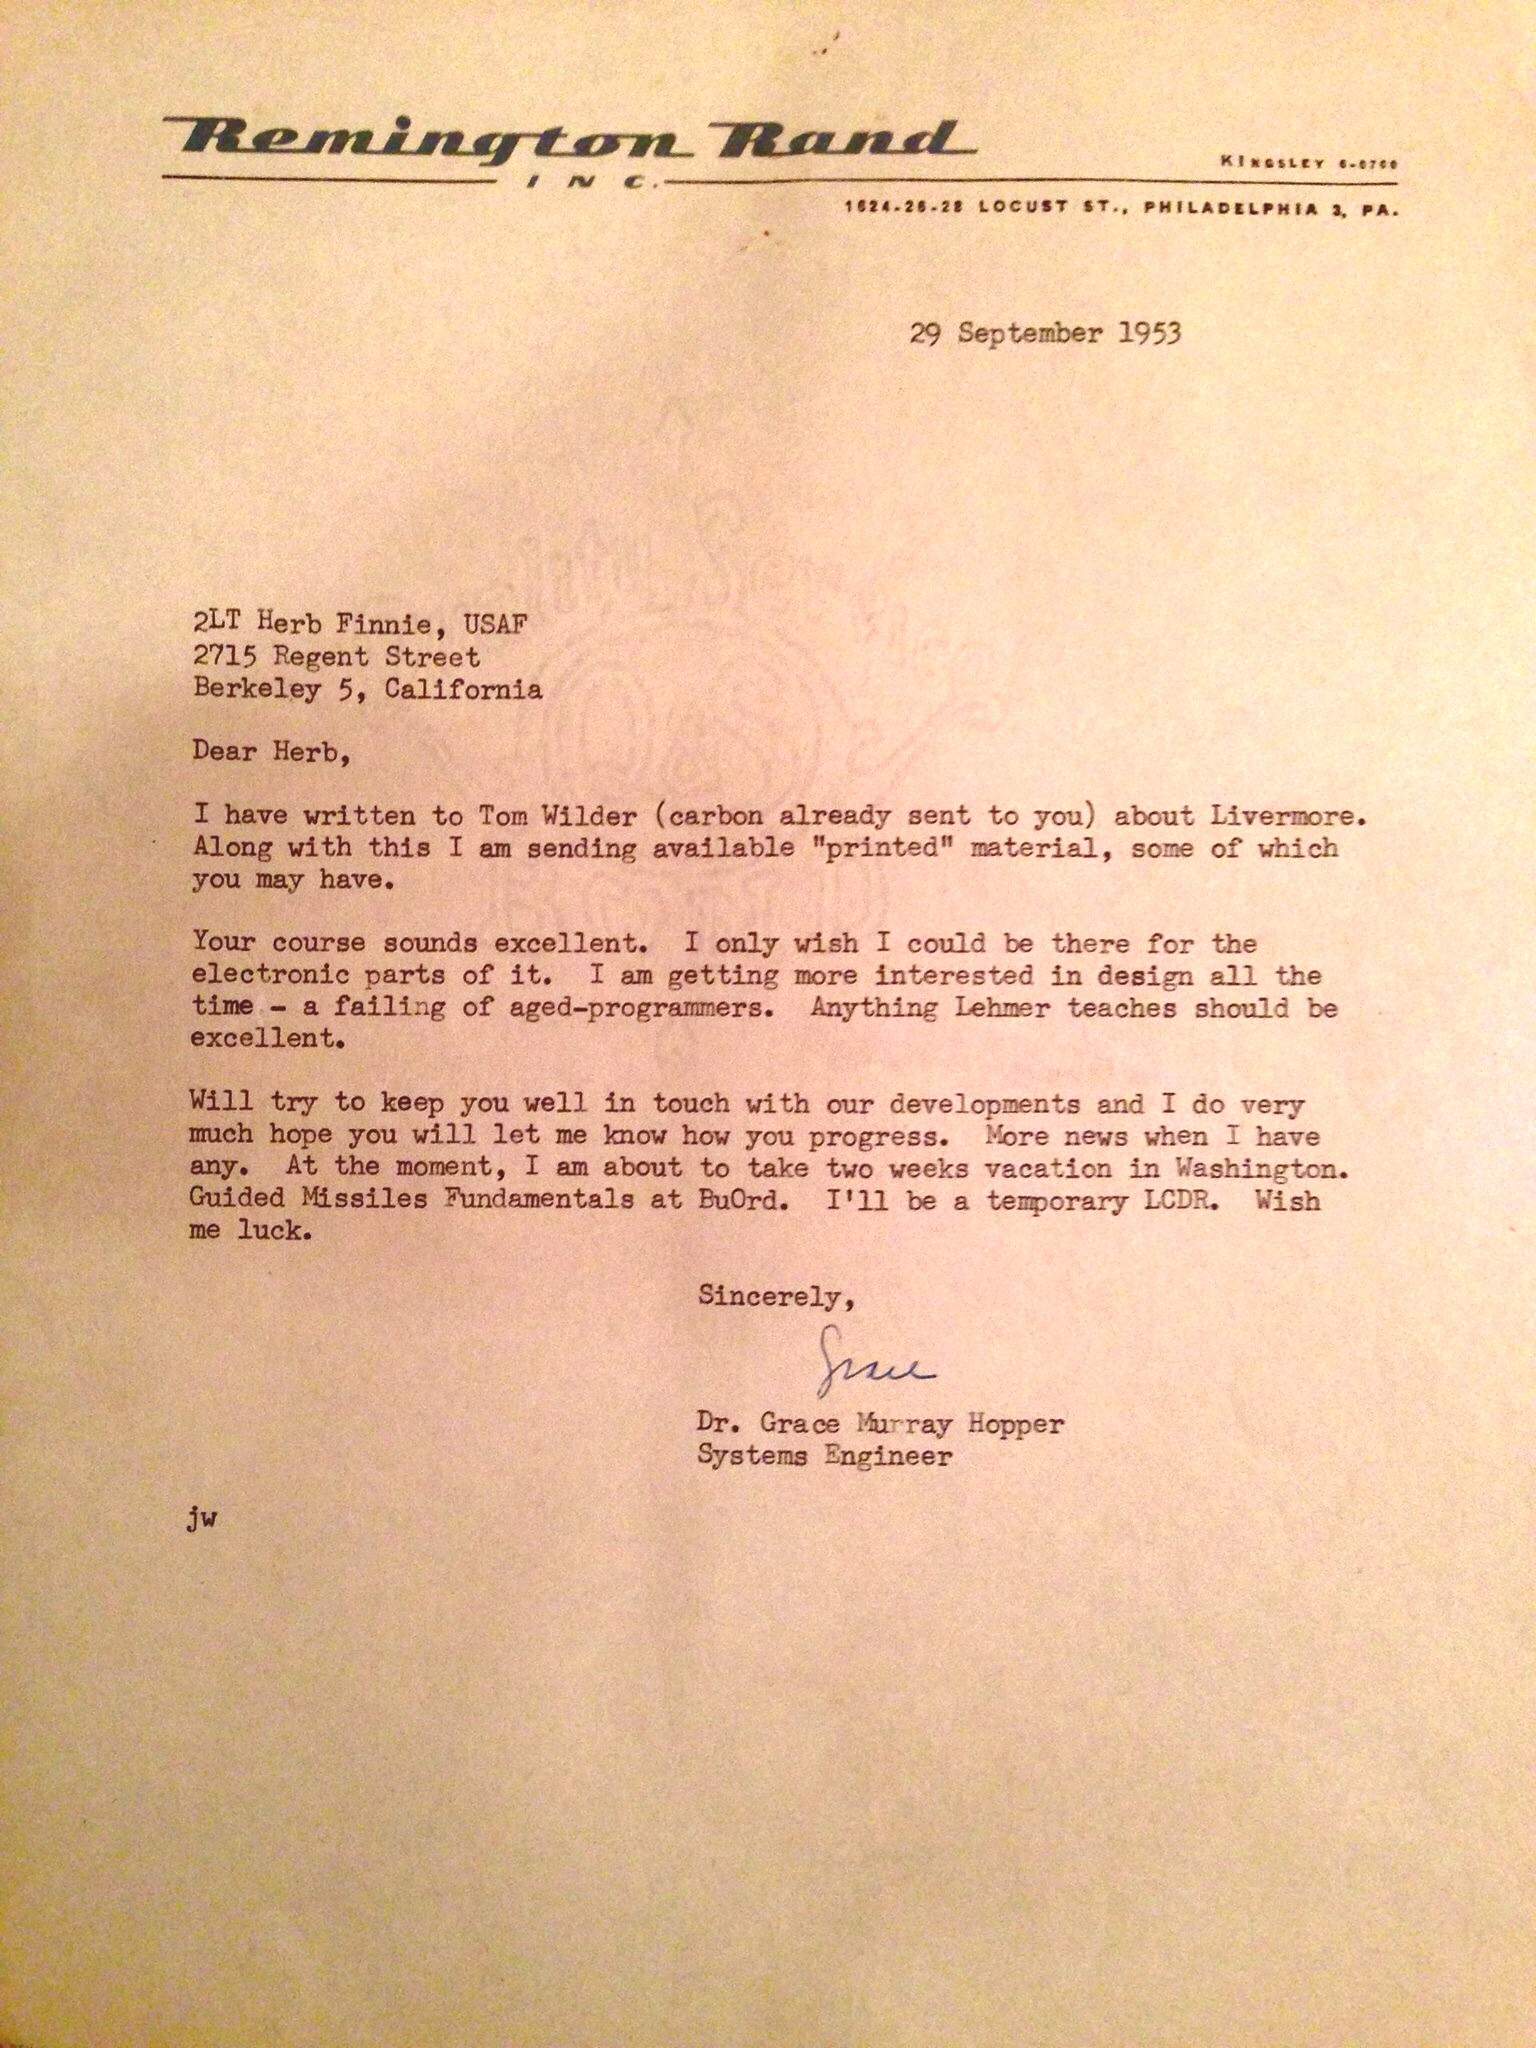 Grace Hopper letter